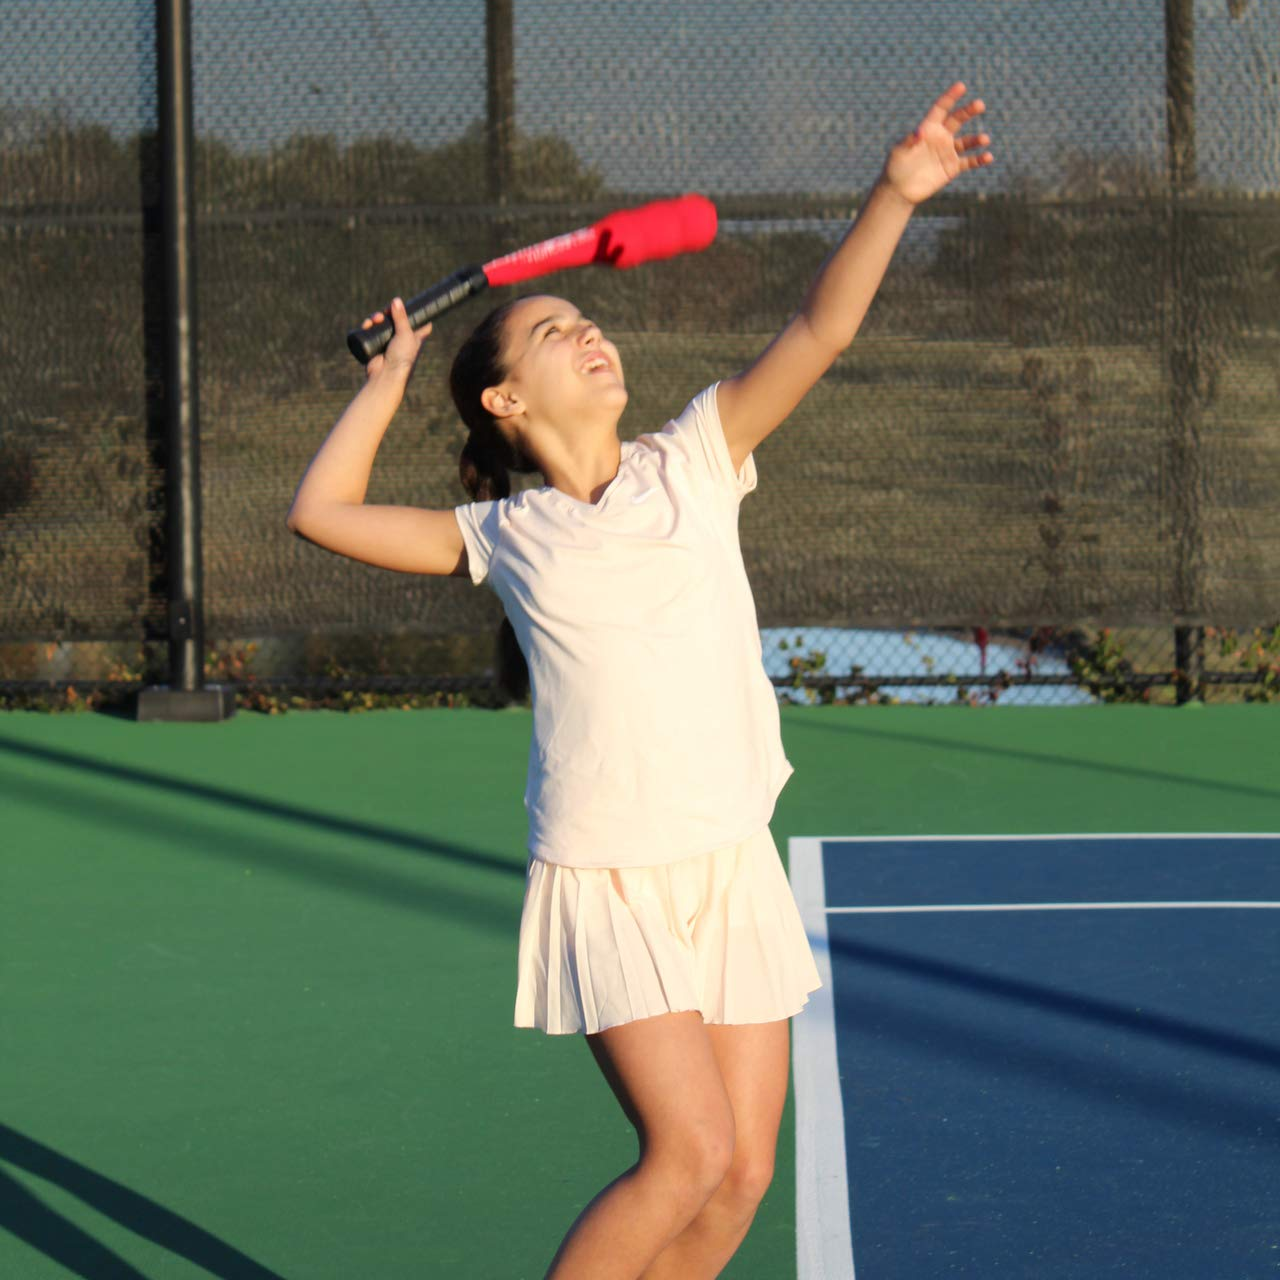 OnCourt OffCourt Serving Sock - Improve Rhythm and Fluidity of Serves/Correct Uneven and Awkward Serving Motions